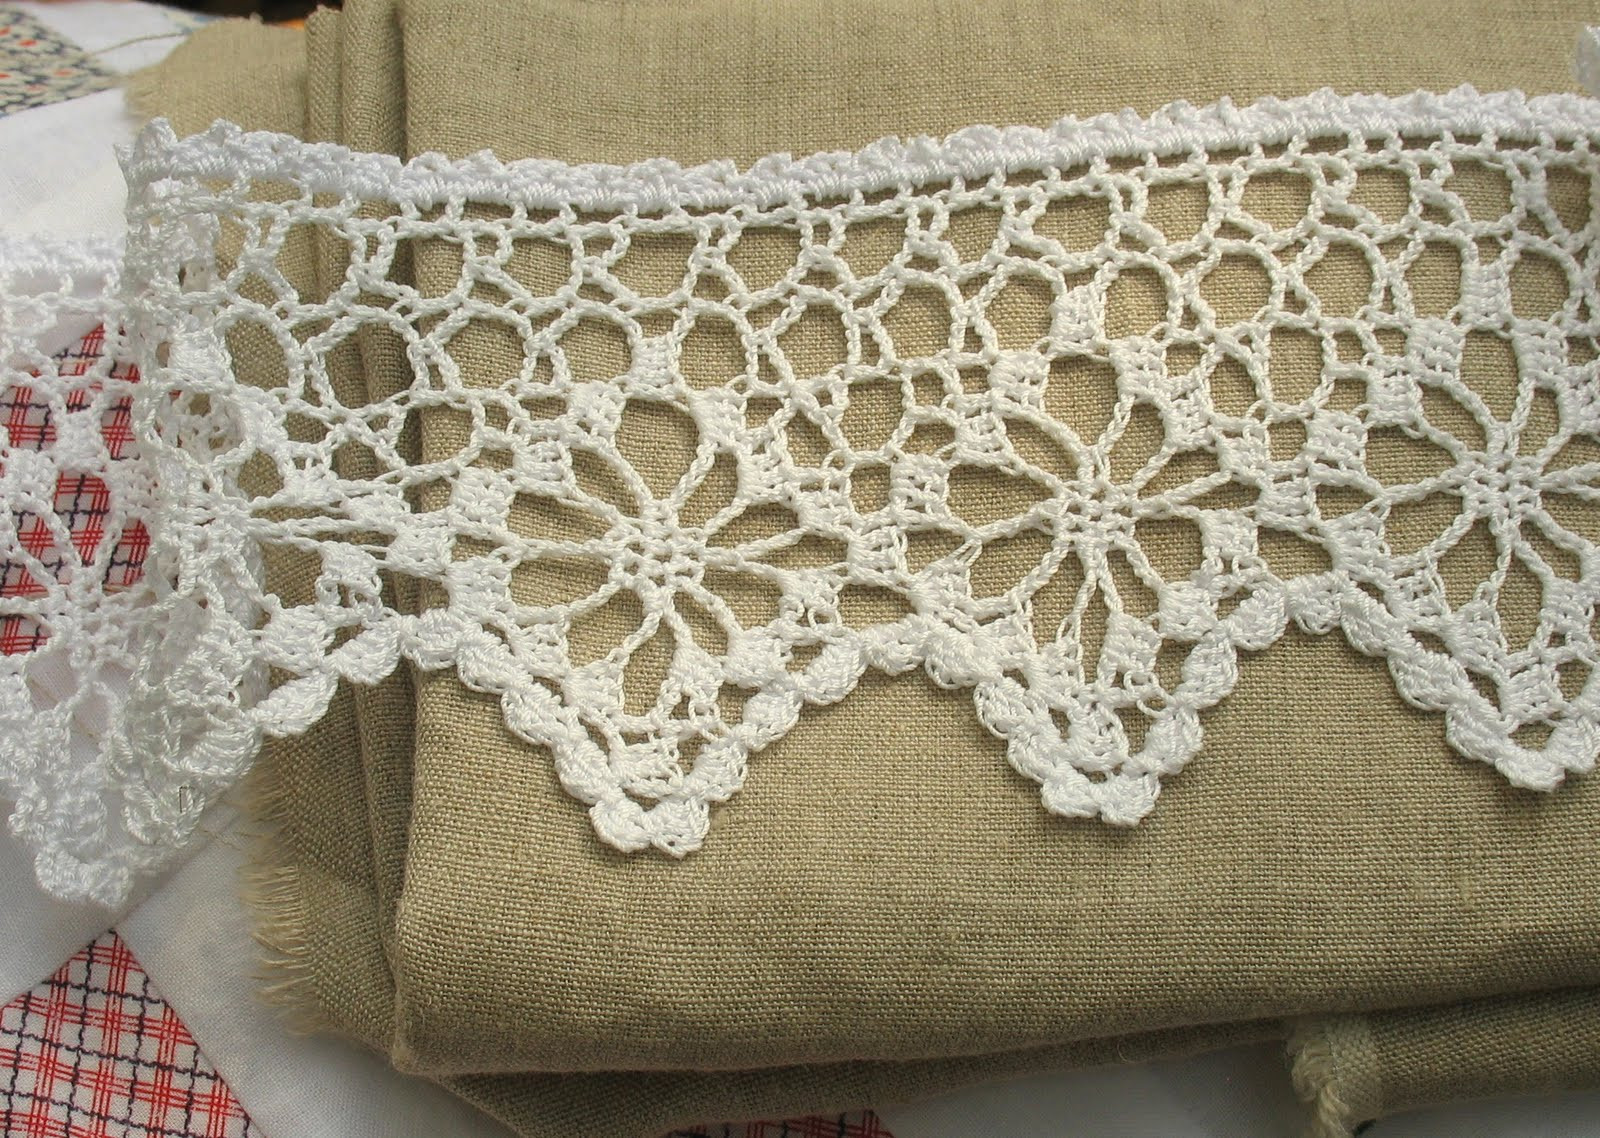 Lace Edging Elegant Amy Brumley Crocheted Lace Curtains Of Incredible 44 Ideas Lace Edging